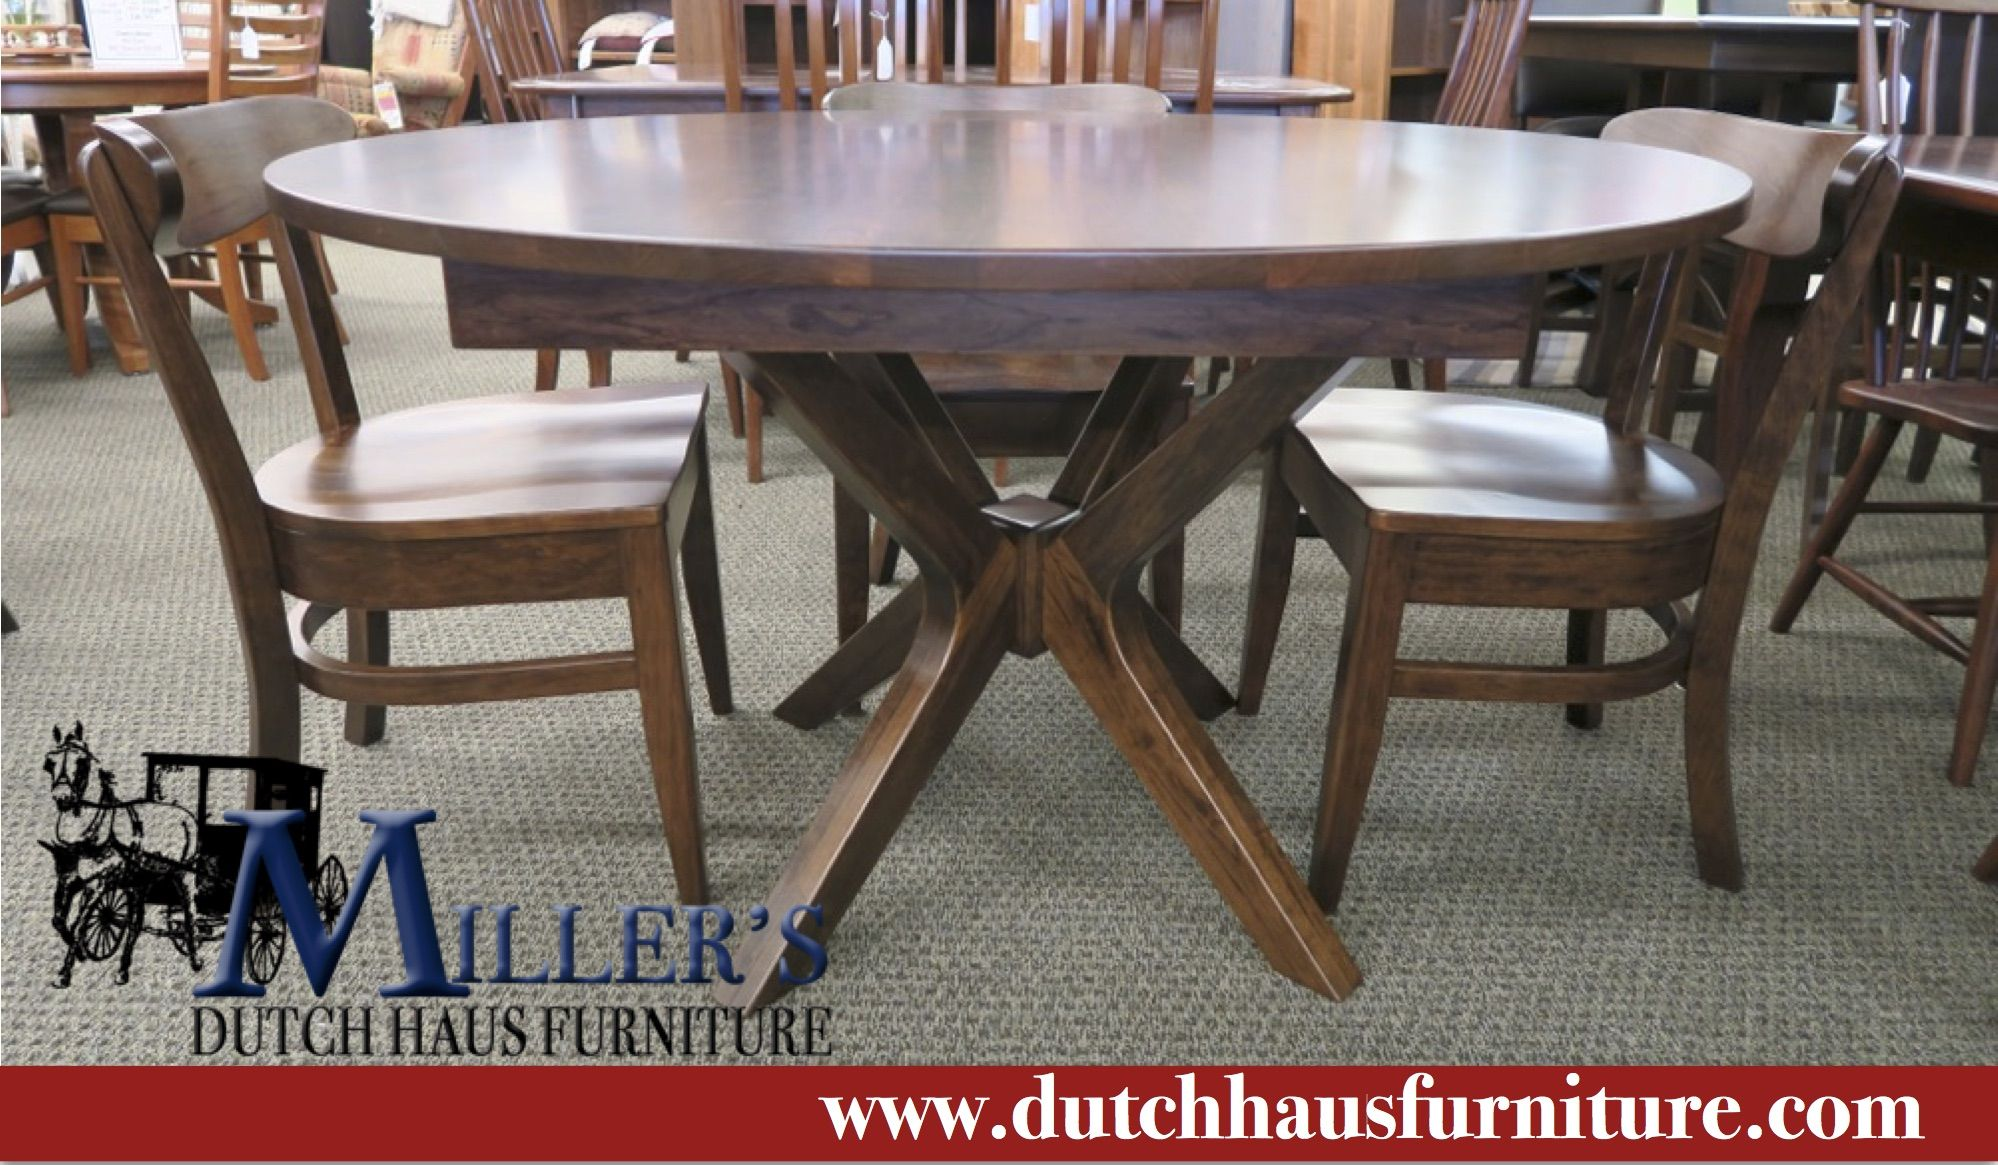 Our Vadsco Table Set Shown in a beautiful Rustic Cherry wood